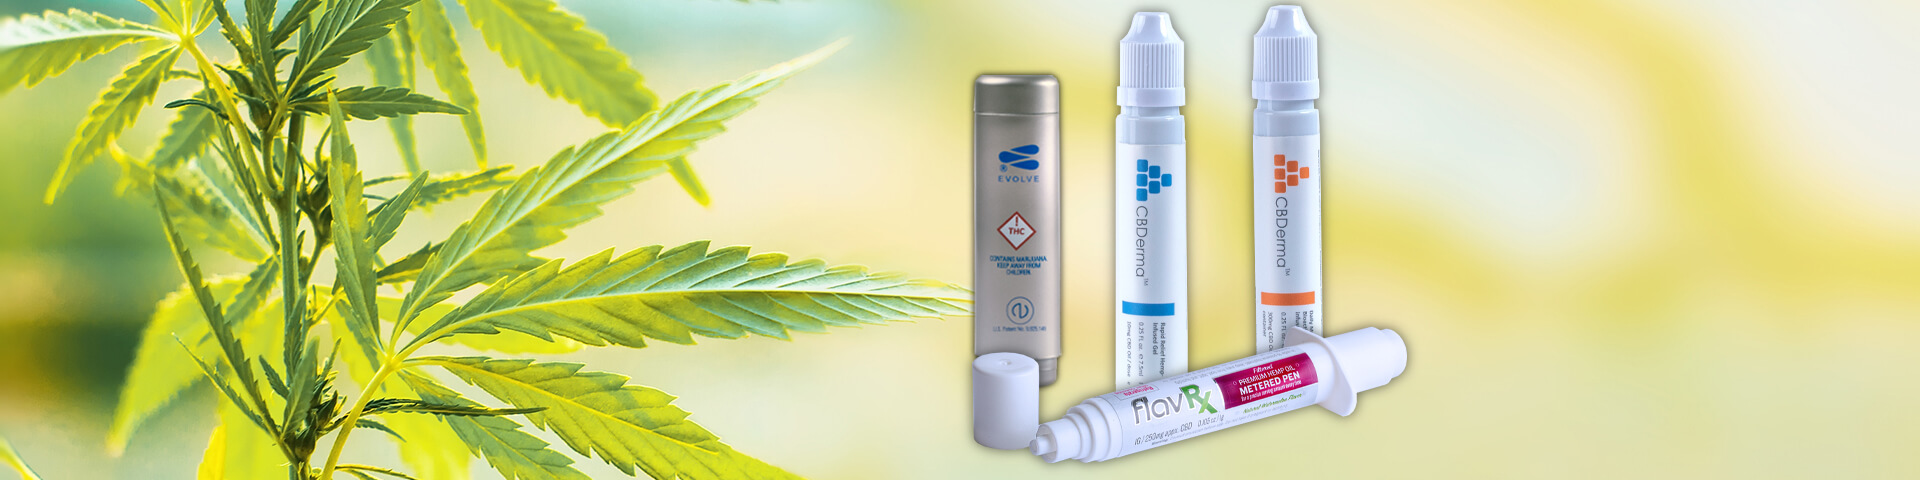 Cannabis Dosing Devices by Lucas Packaging